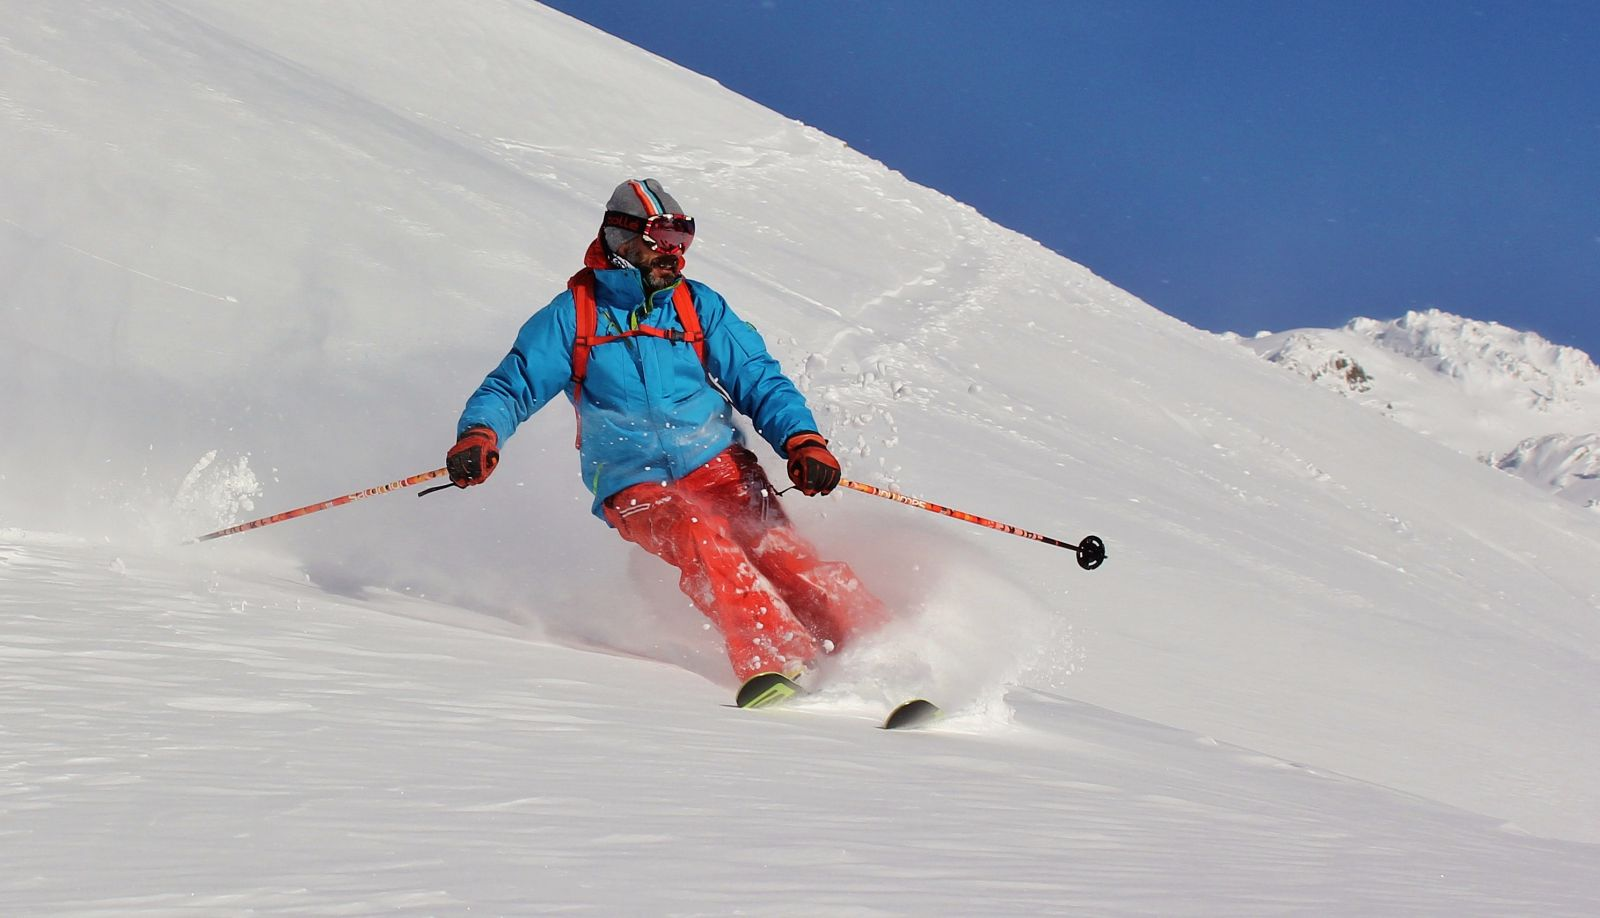 ski,chamonix,montblanc,freeride,snow,snowdump,grandsmontets,flegere,brevent,avalanche,awarness, course,mountainguide,skitouring,hors piste,vallée blanche,guide haute montagne